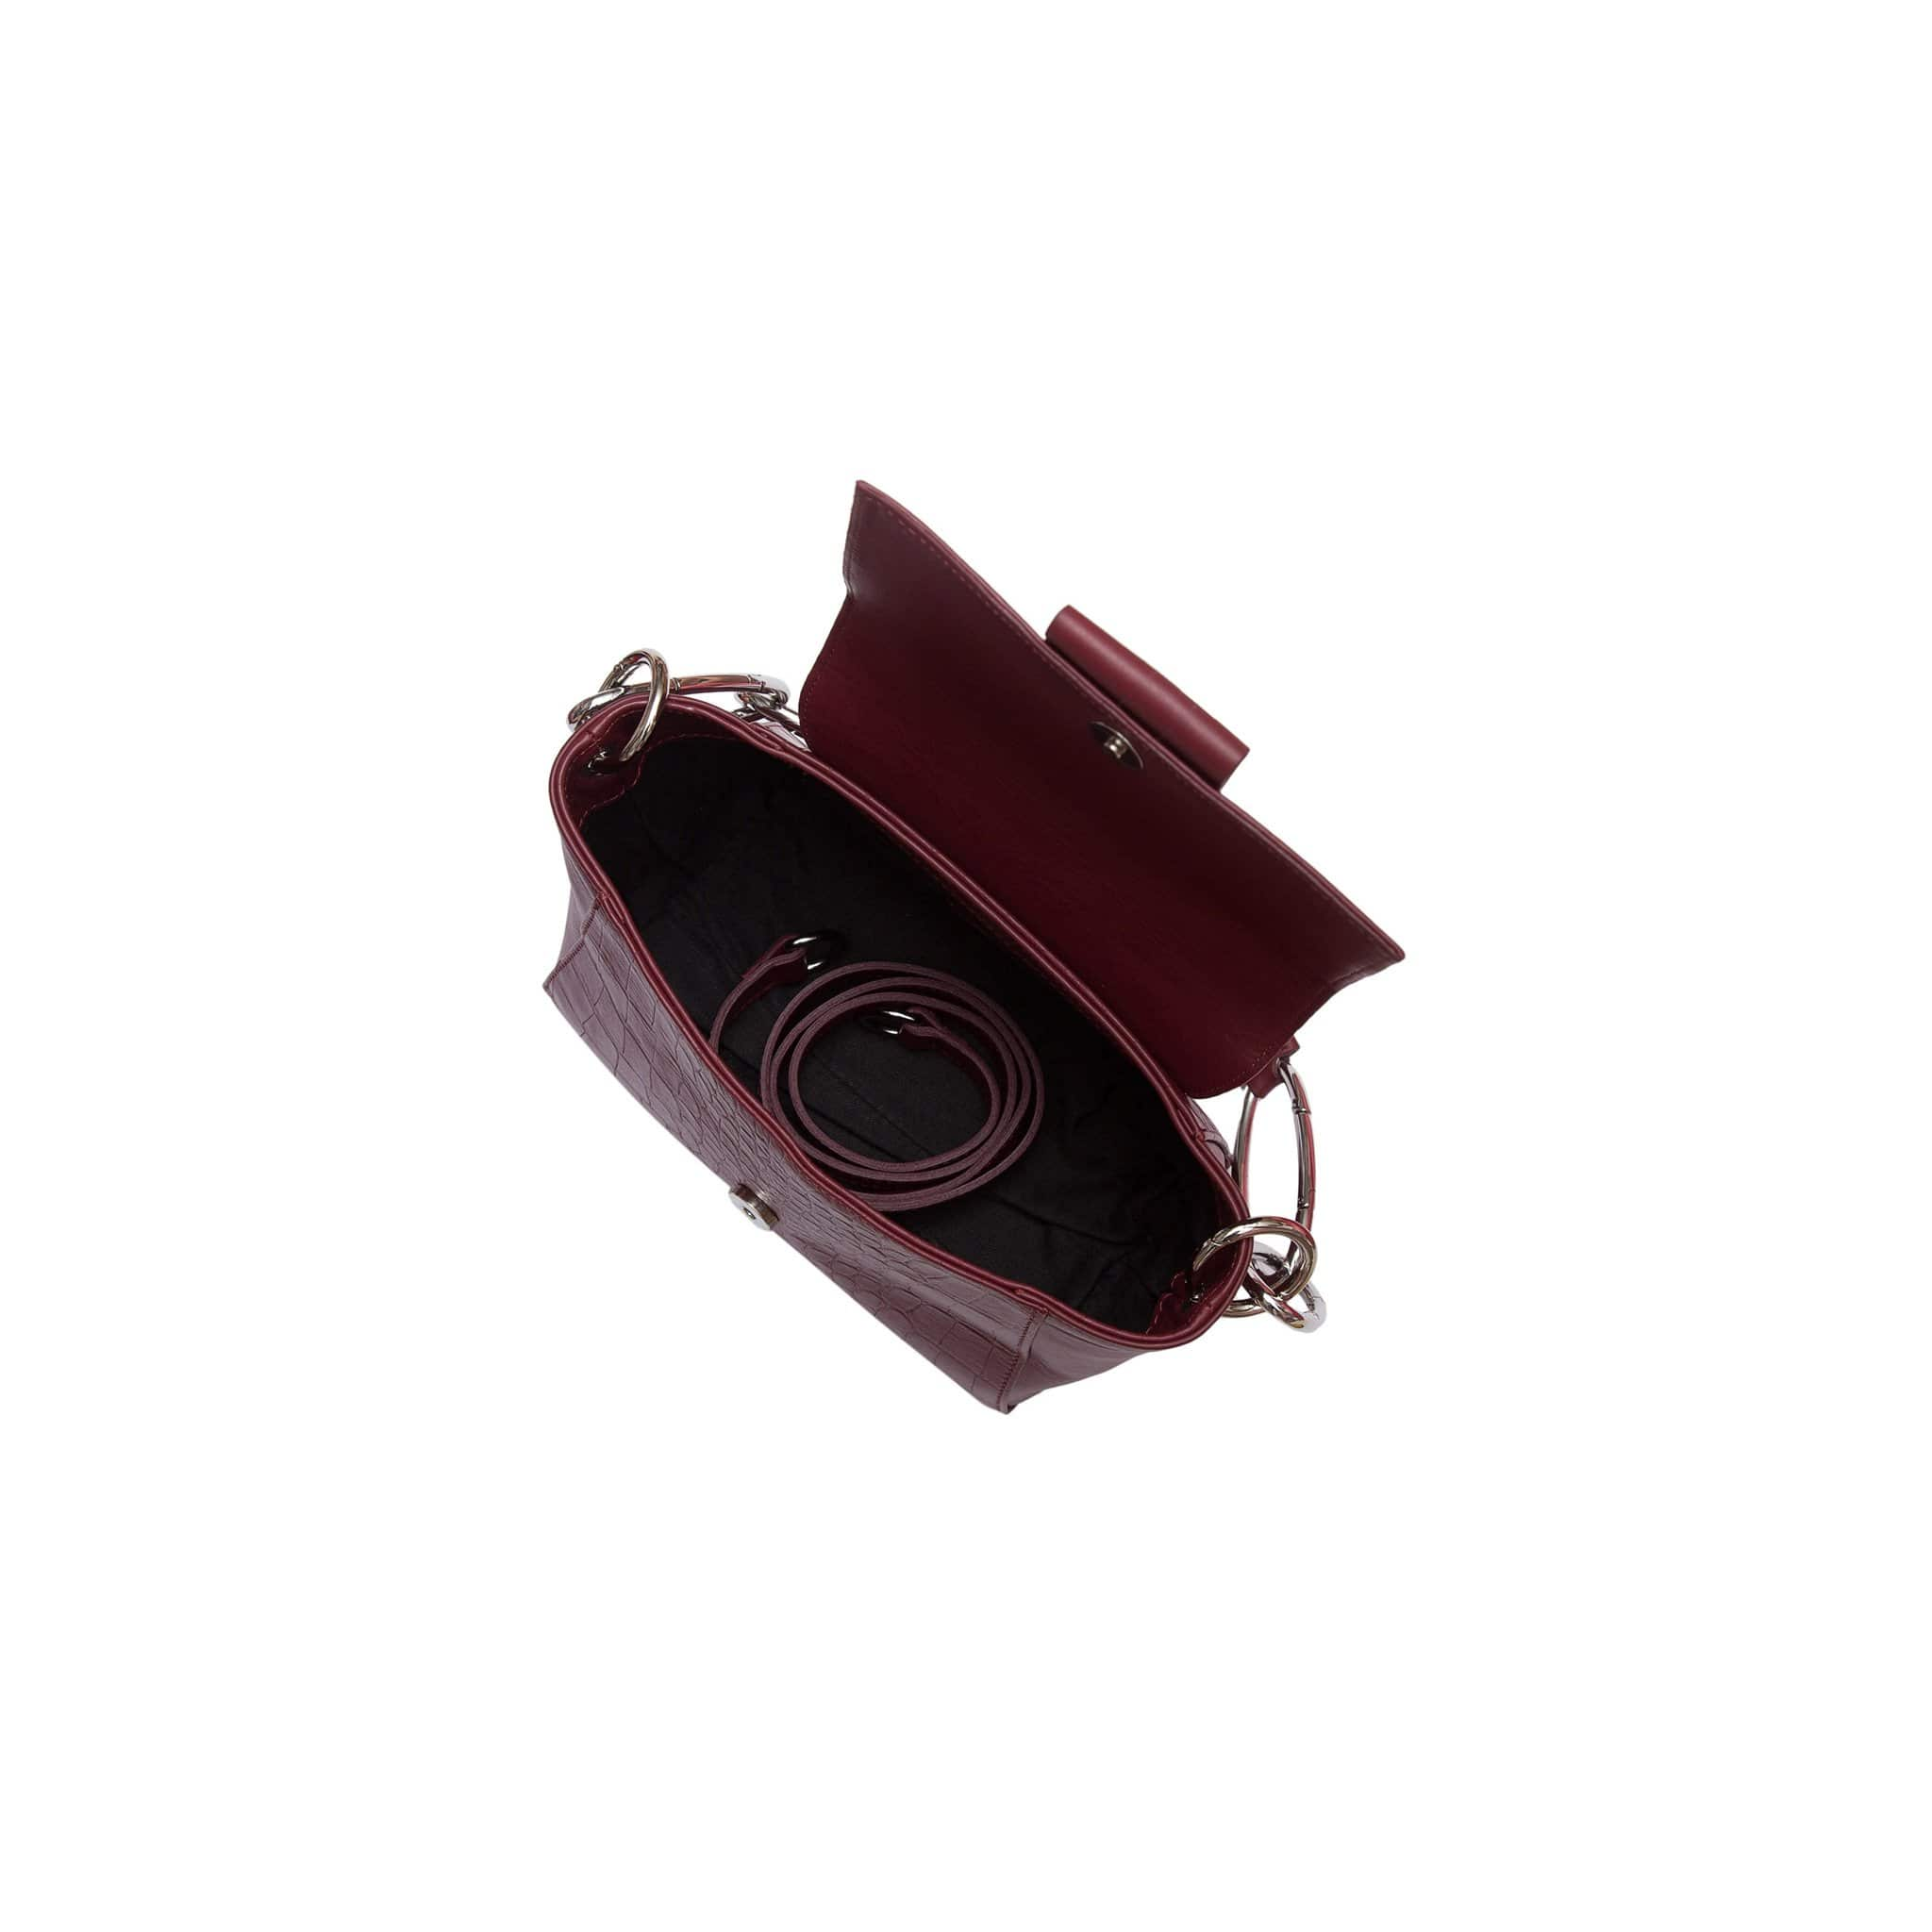 Cabiria Mini Cocco Leather Handbag -Bordeaux